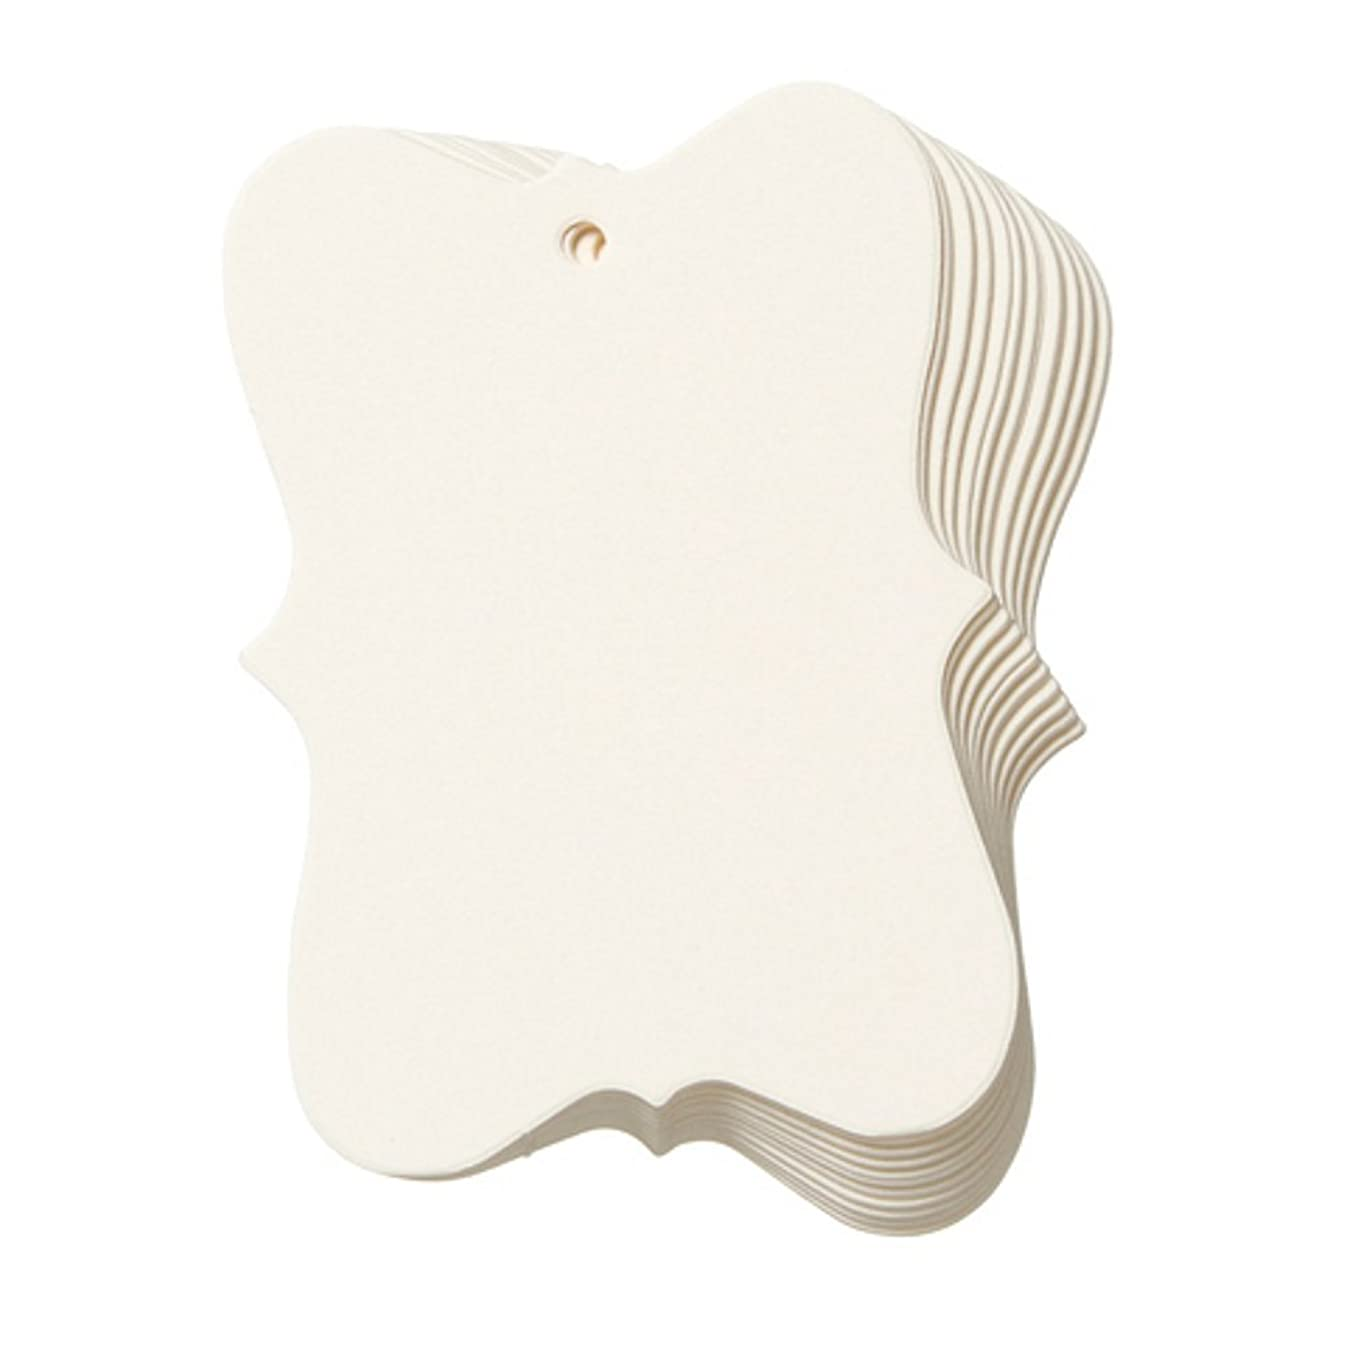 Ivory Fashion Tags by Core'dinations - Small (2in. x 2.75in., 20 pieces/pkg.)